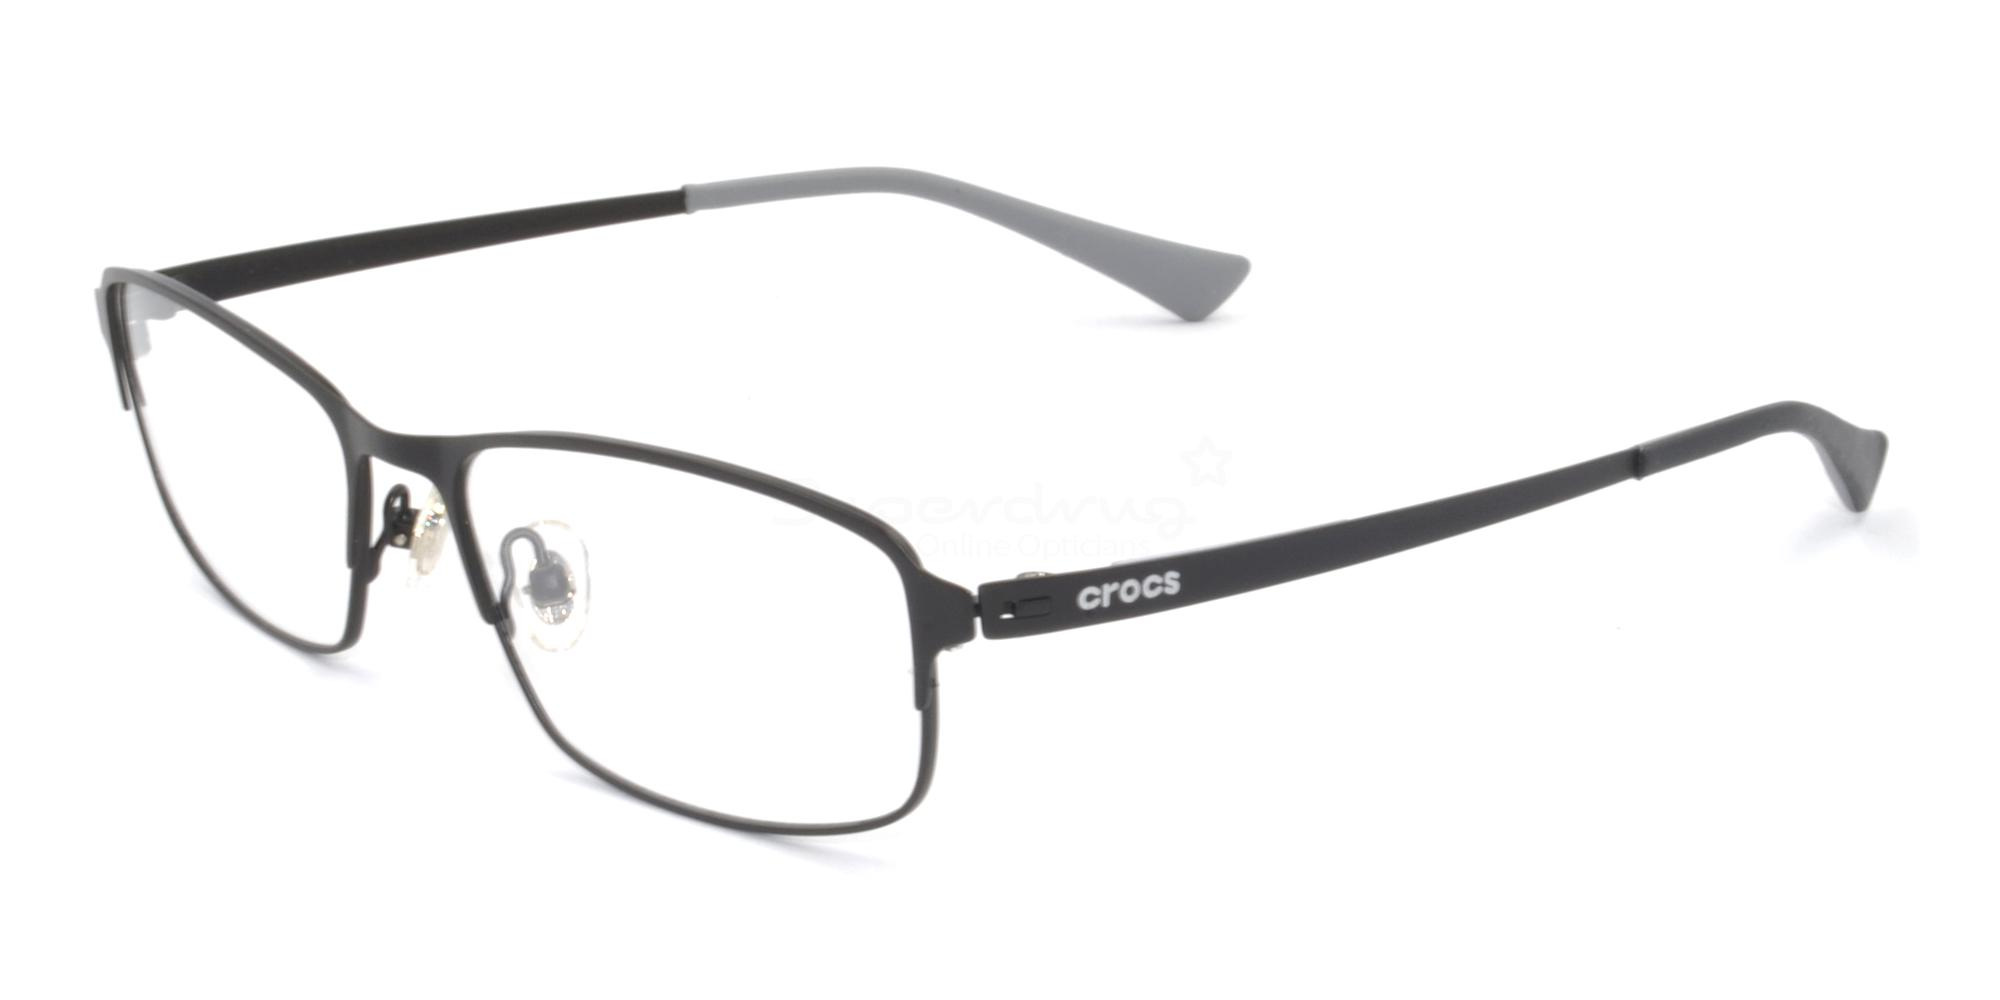 20BK CF4309 Glasses, Crocs Eyewear